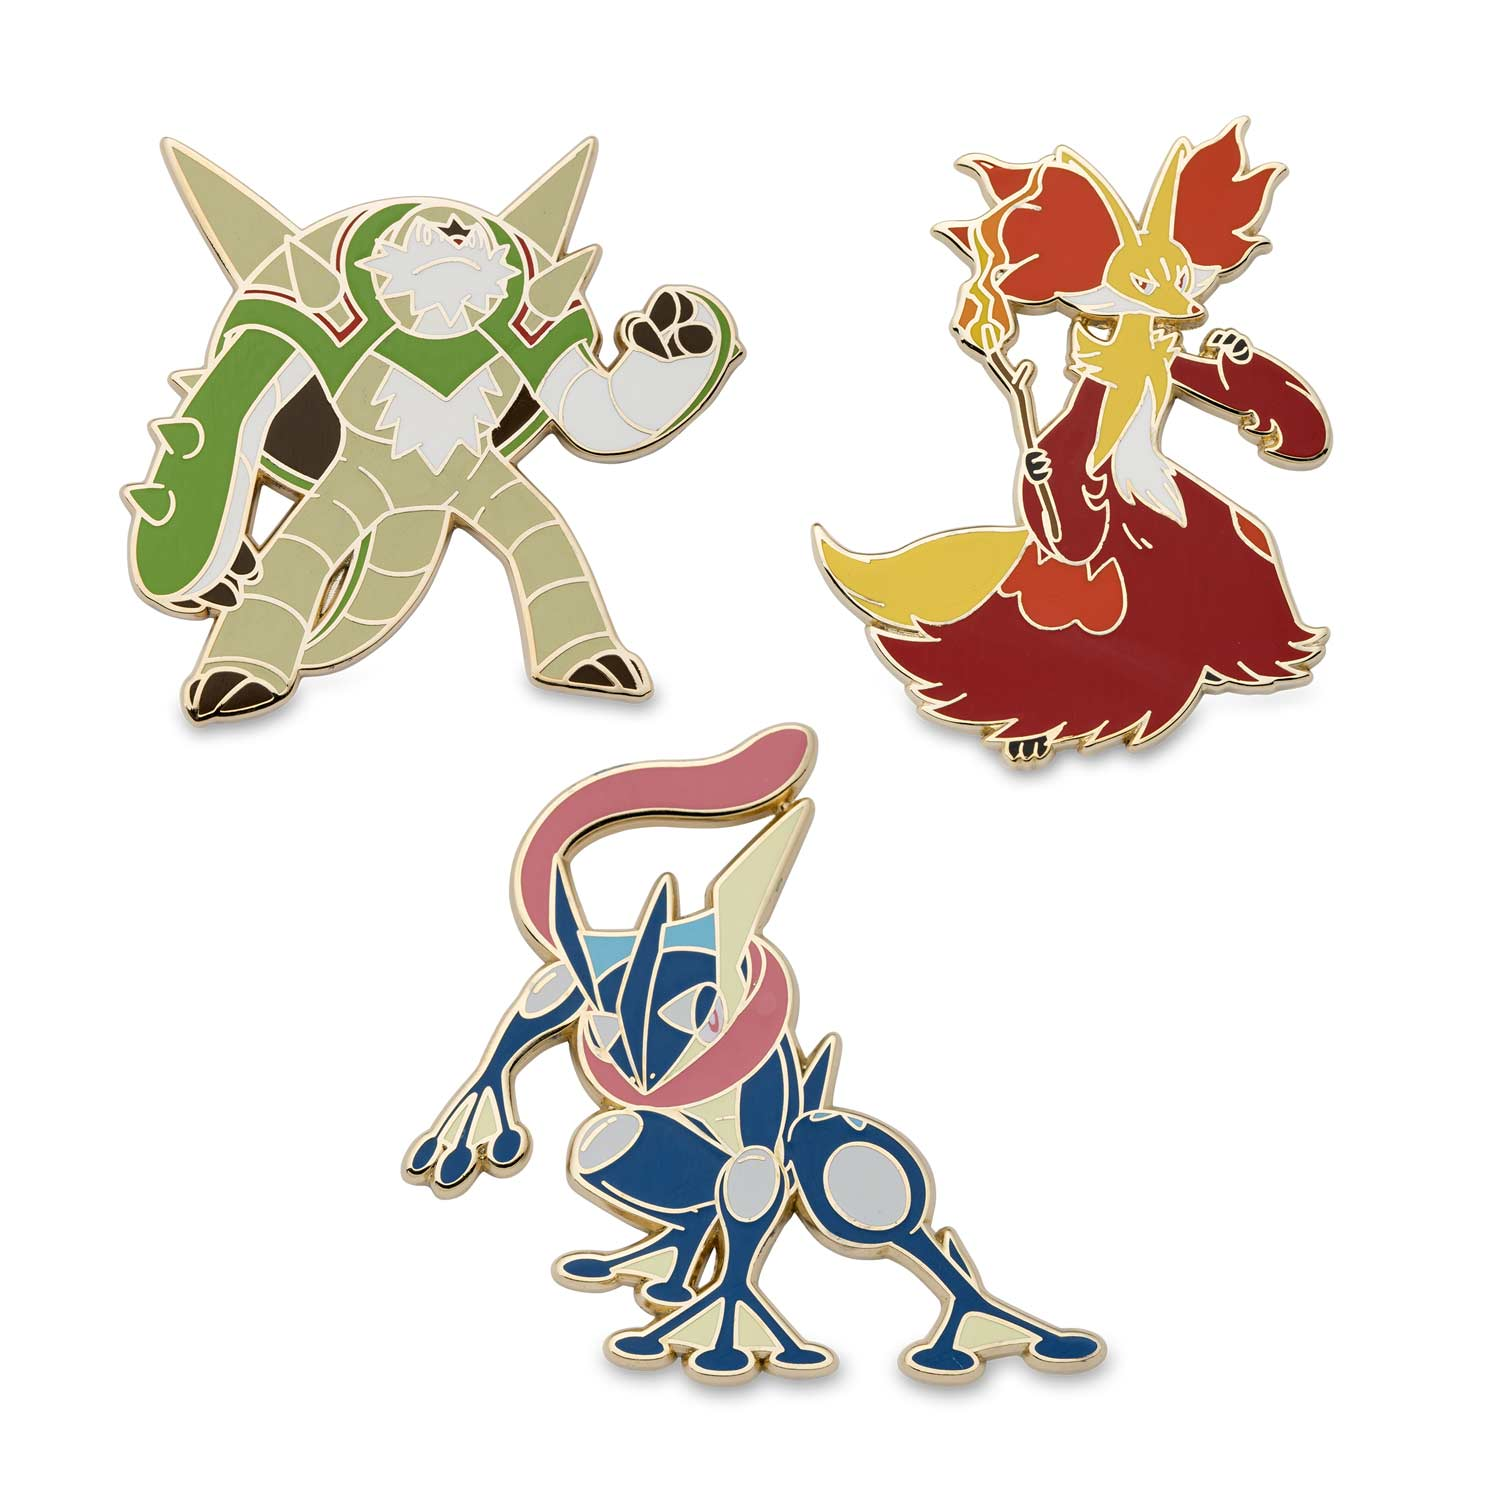 Chesnaught Delphox Greninja Pok 233 Mon Pin 3 Pack